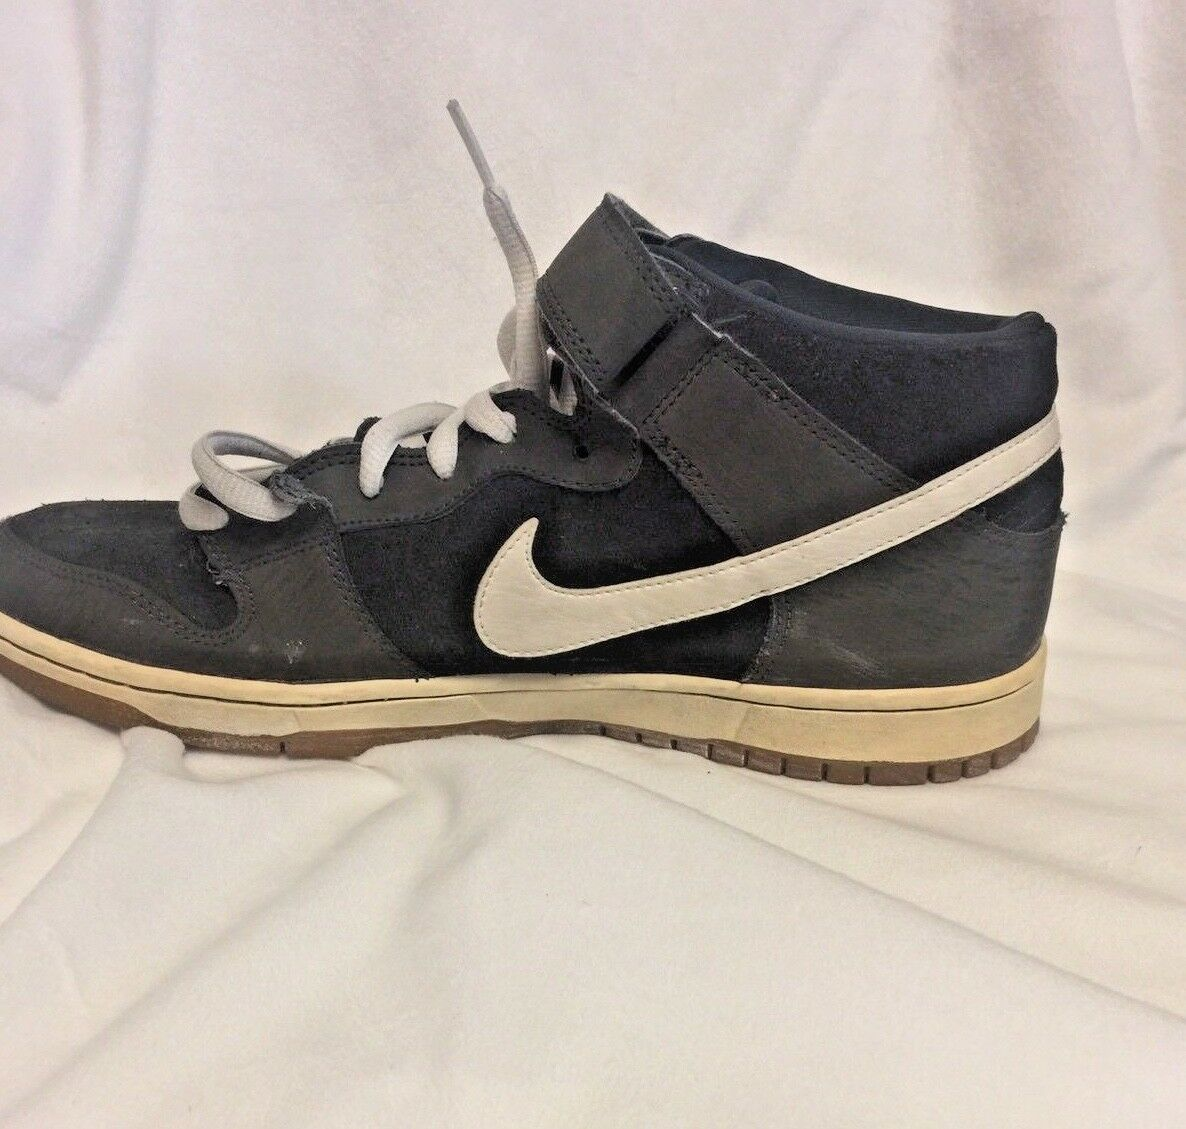 Nike DUNK MID MID MID PRO SB Size 10.5 Grey White 88a97a